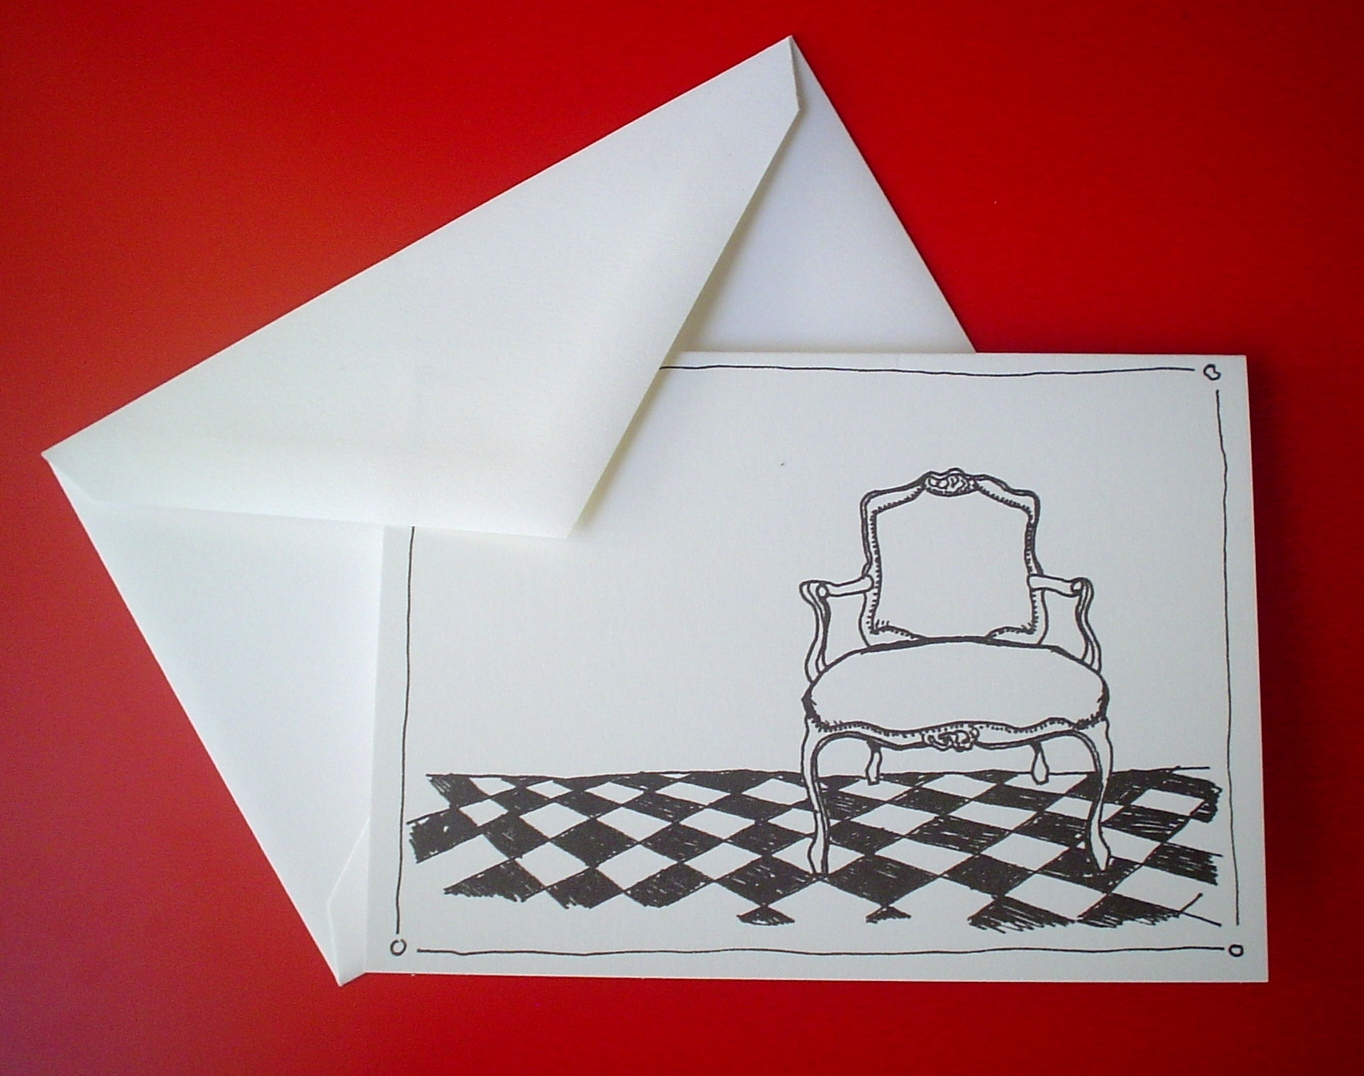 Ceremony, Reception, Flowers & Decor, Stationery, Classic, Announcements, Invitations, Chair, Elies papel